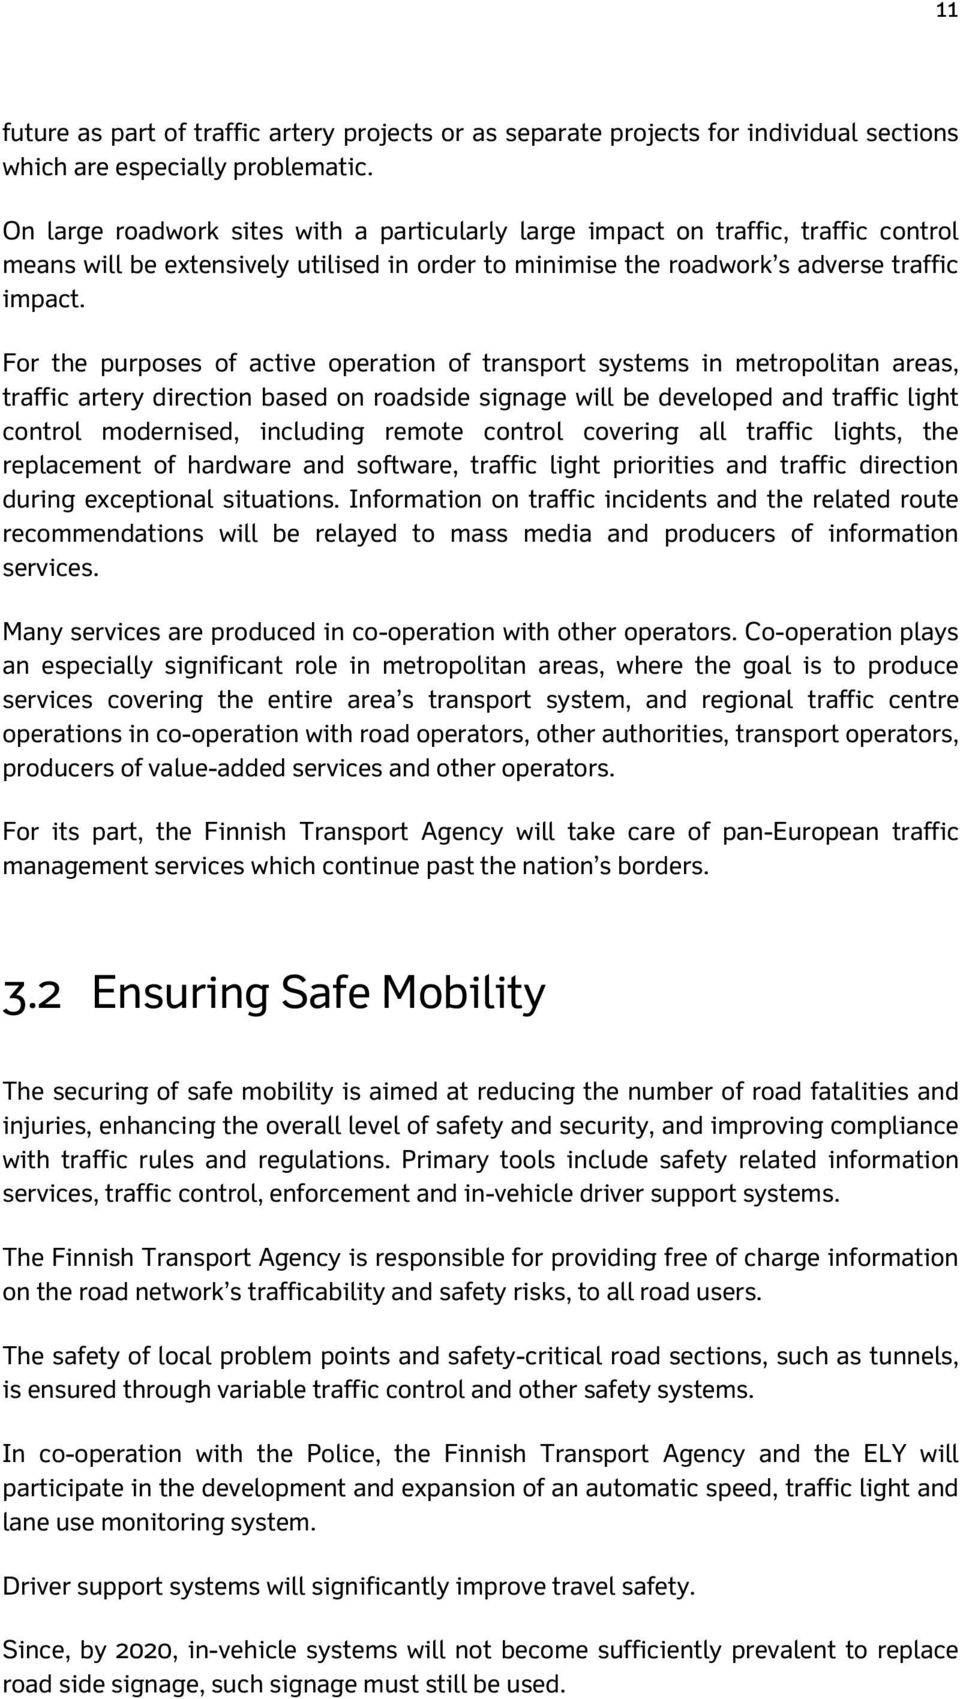 For the purposes of active operation of transport systems in metropolitan areas, traffic artery direction based on roadside signage will be developed and traffic light control modernised, including